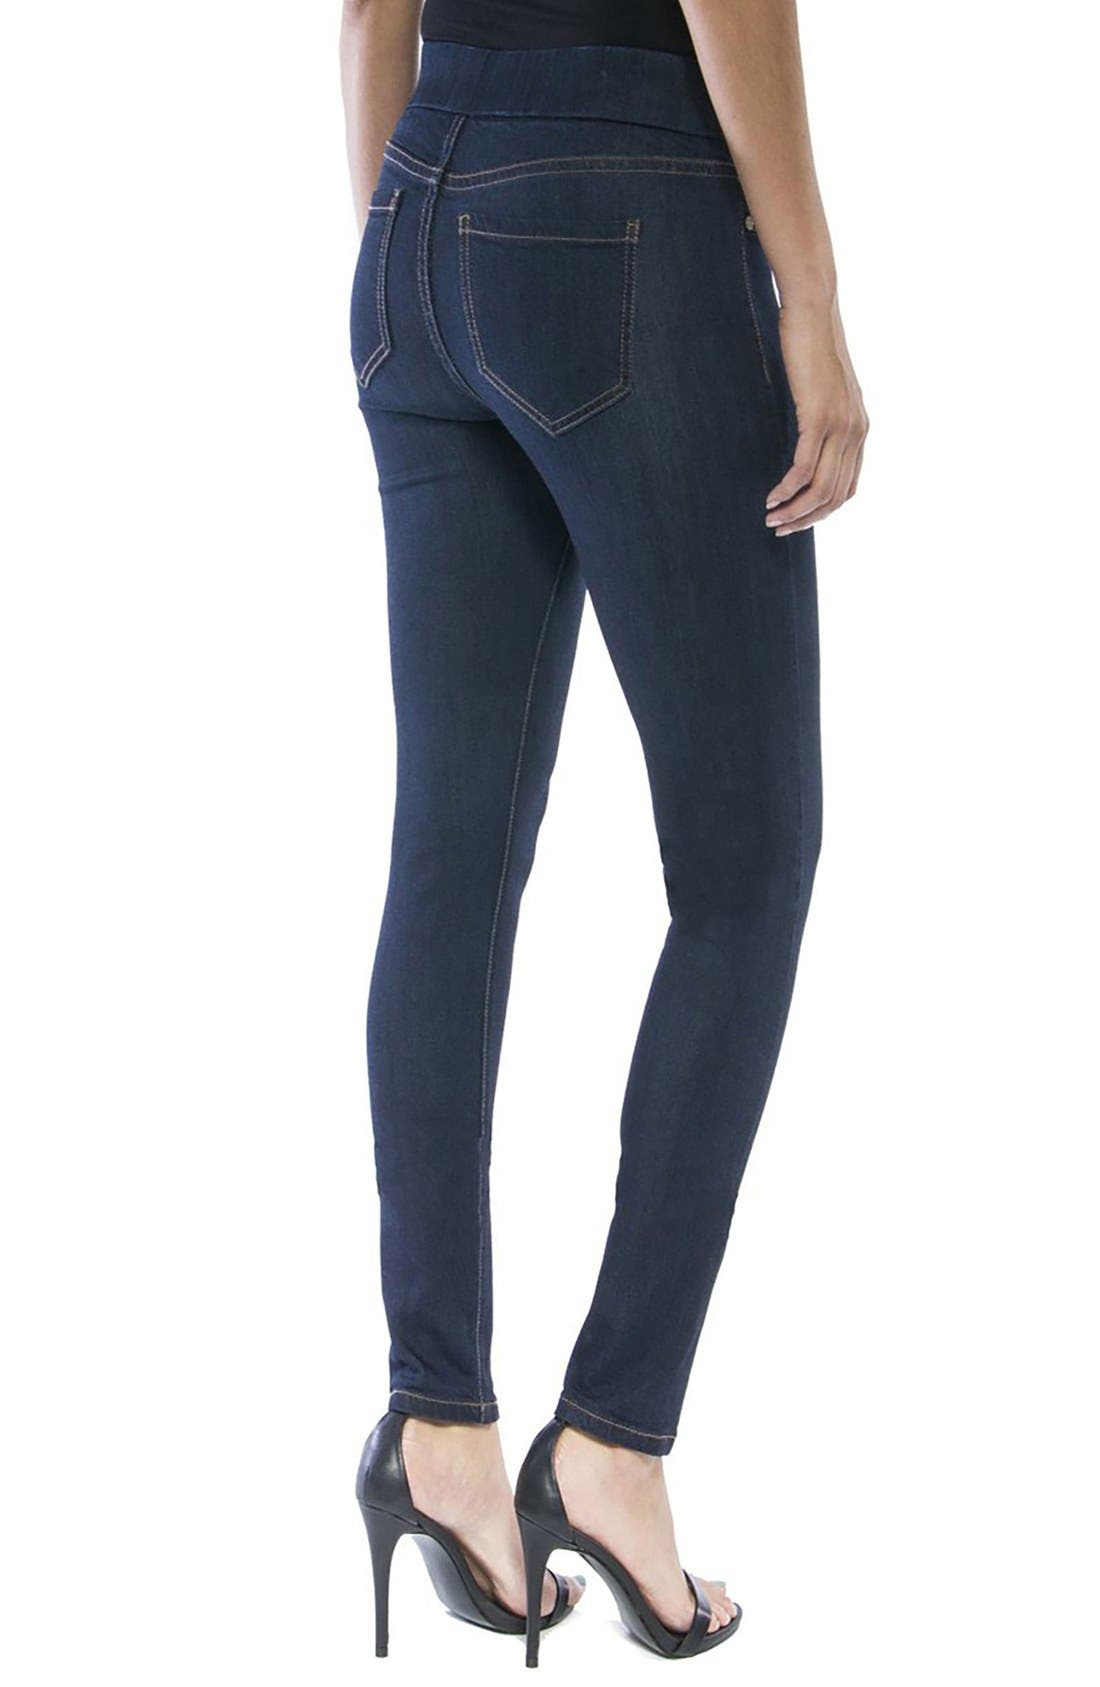 LIVERPOOL,                             Jeans Company Sienna Mid Rise Soft Stretch Denim Leggings,                             Alternate thumbnail 3, color,                             INDIGO RINSE